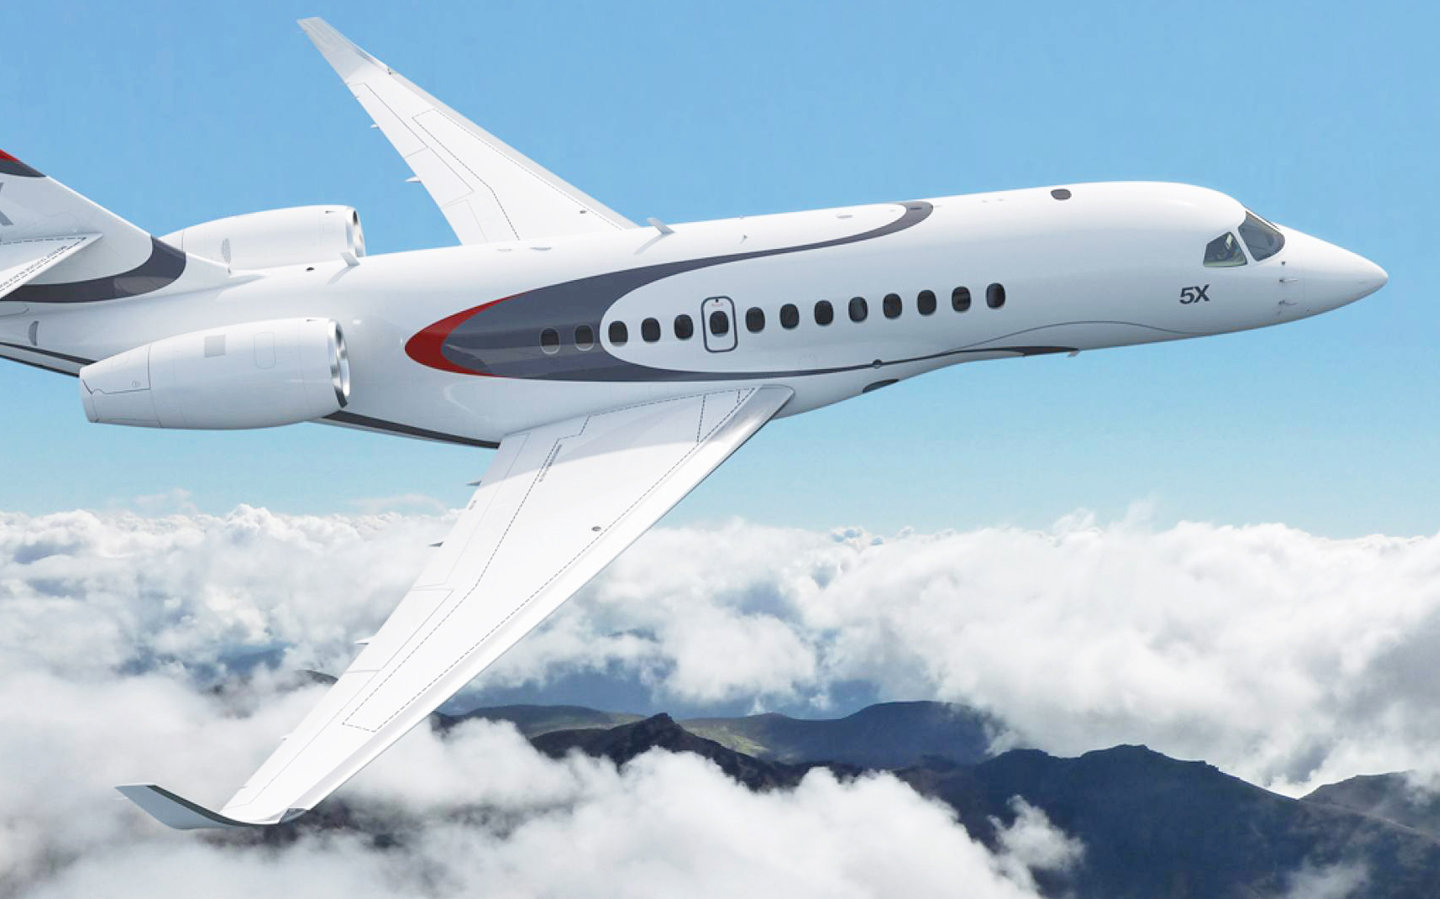 Featured Aircraft: Dassault Falcon 5X